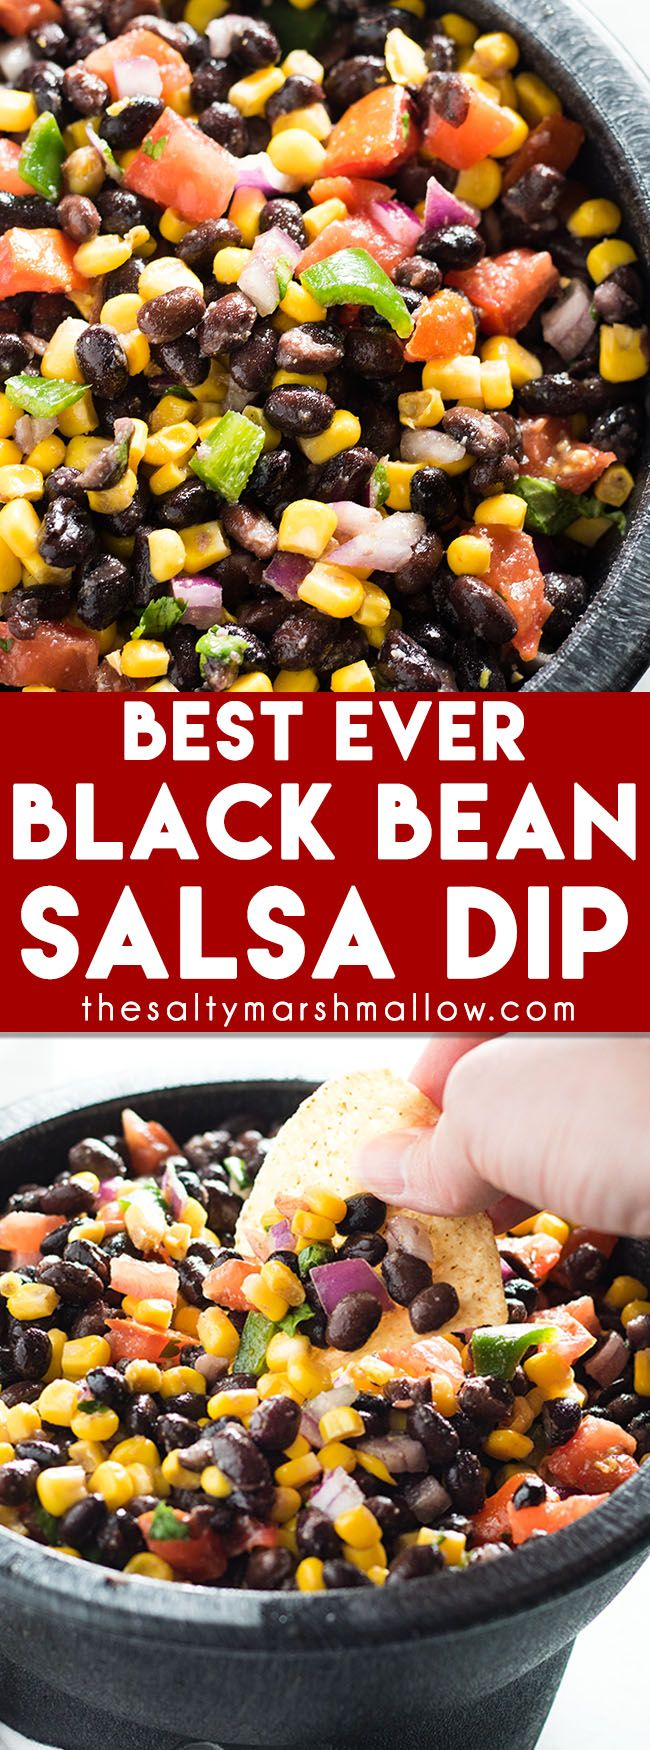 Black Bean Salsa: Easy to make black bean salsa dip with corn!  This healthy black bean Mexican salsa recipe tastes super fresh and is great served with grilled chicken or tacos! (Party Top Dip Recipes)